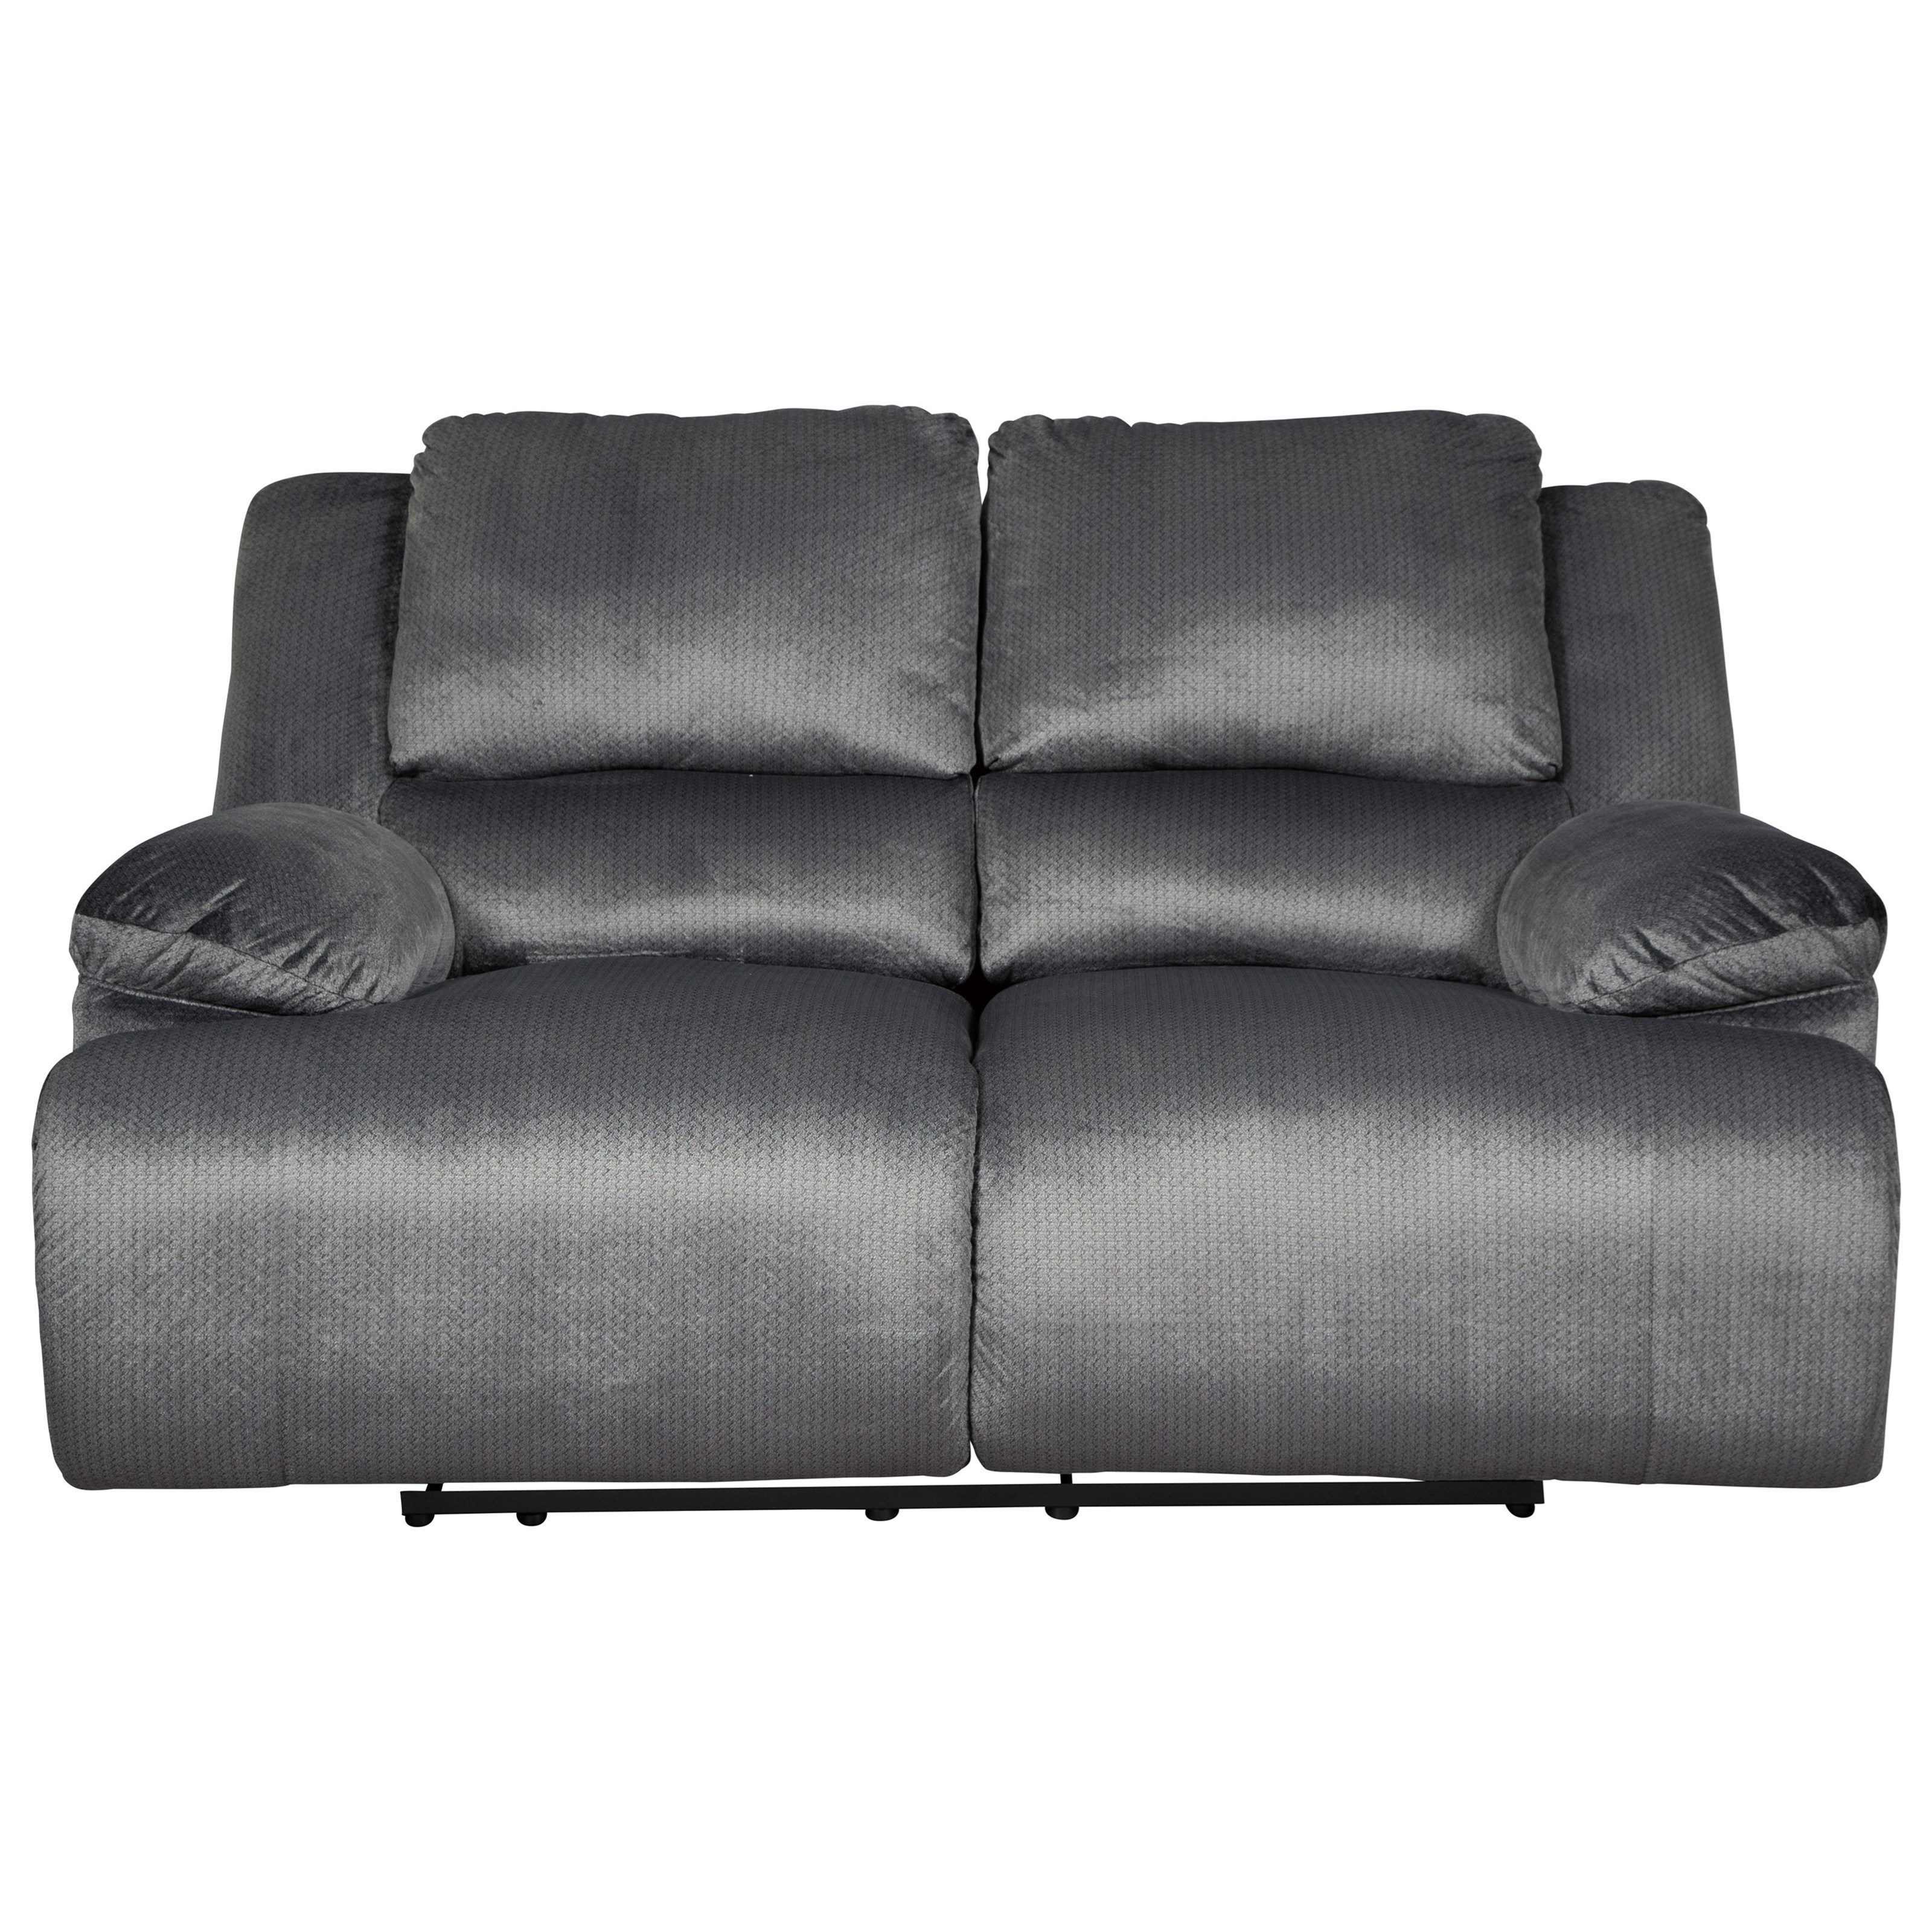 Clonmel Reclining Power Loveseat by Signature Design by Ashley at Northeast Factory Direct